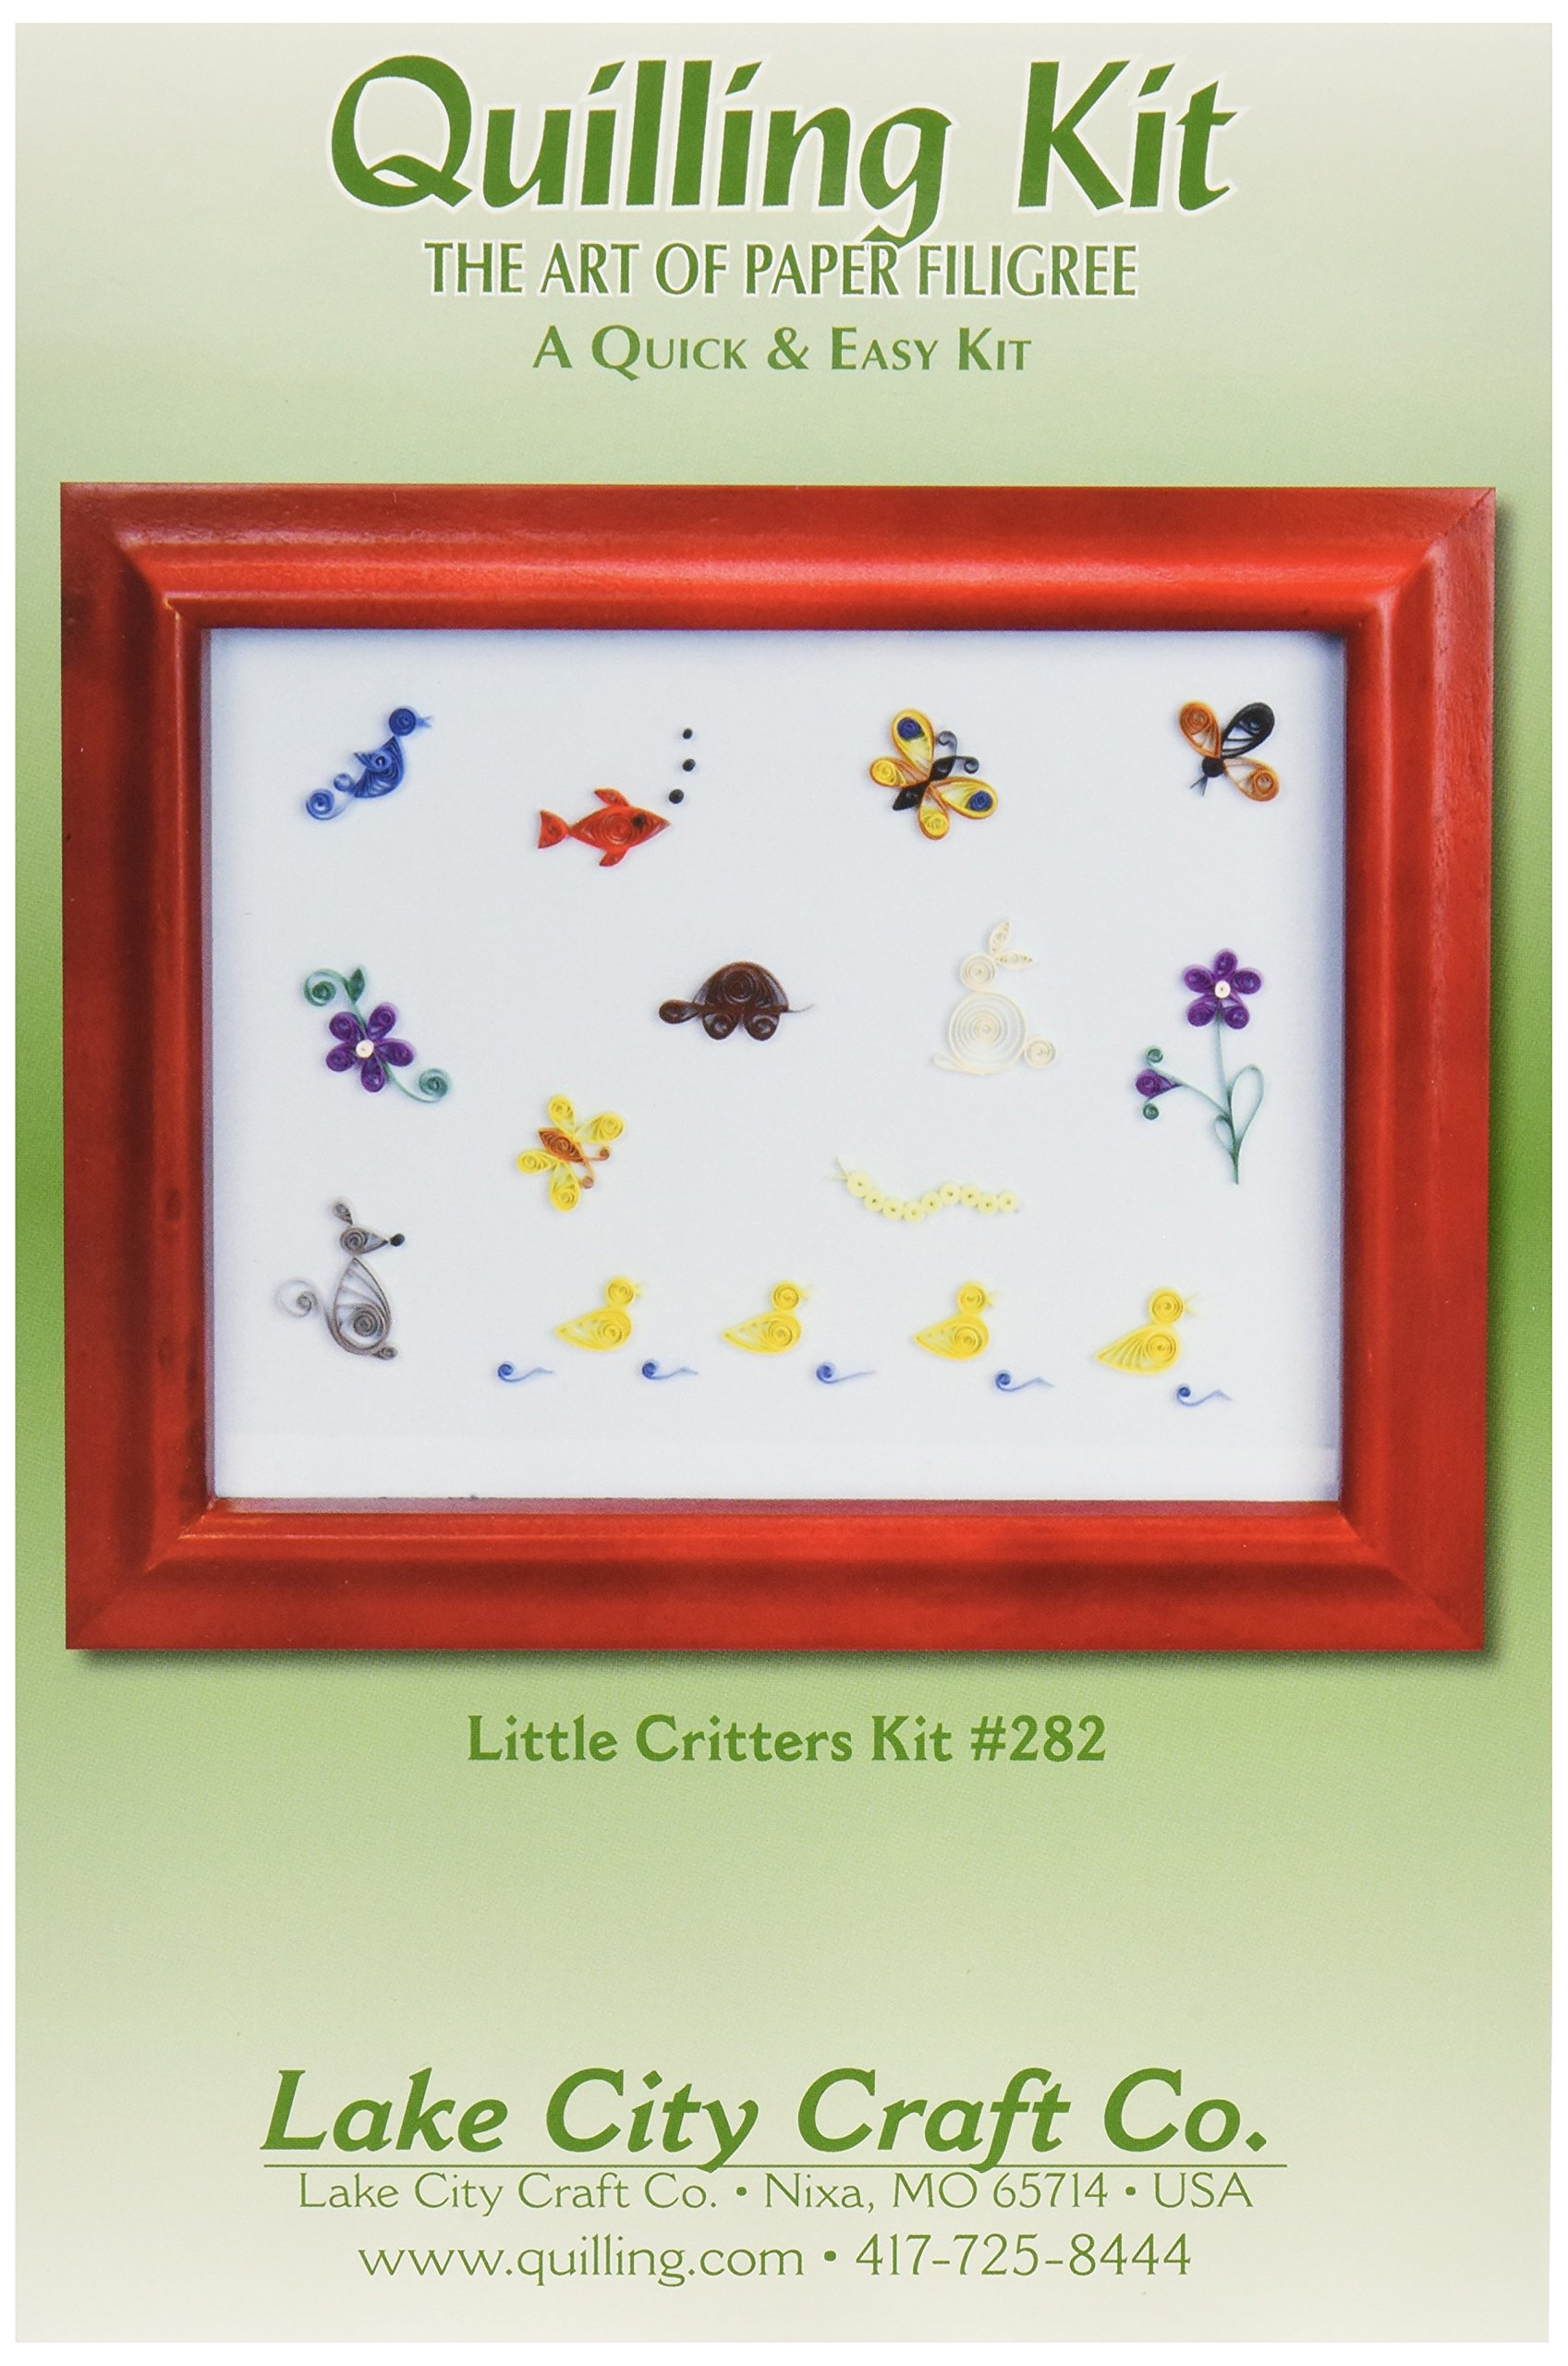 LAKE CITY CRAFT Quilling Kit Quick and Easy Little Critters, Makes 12 by LAKE CITY CRAFT